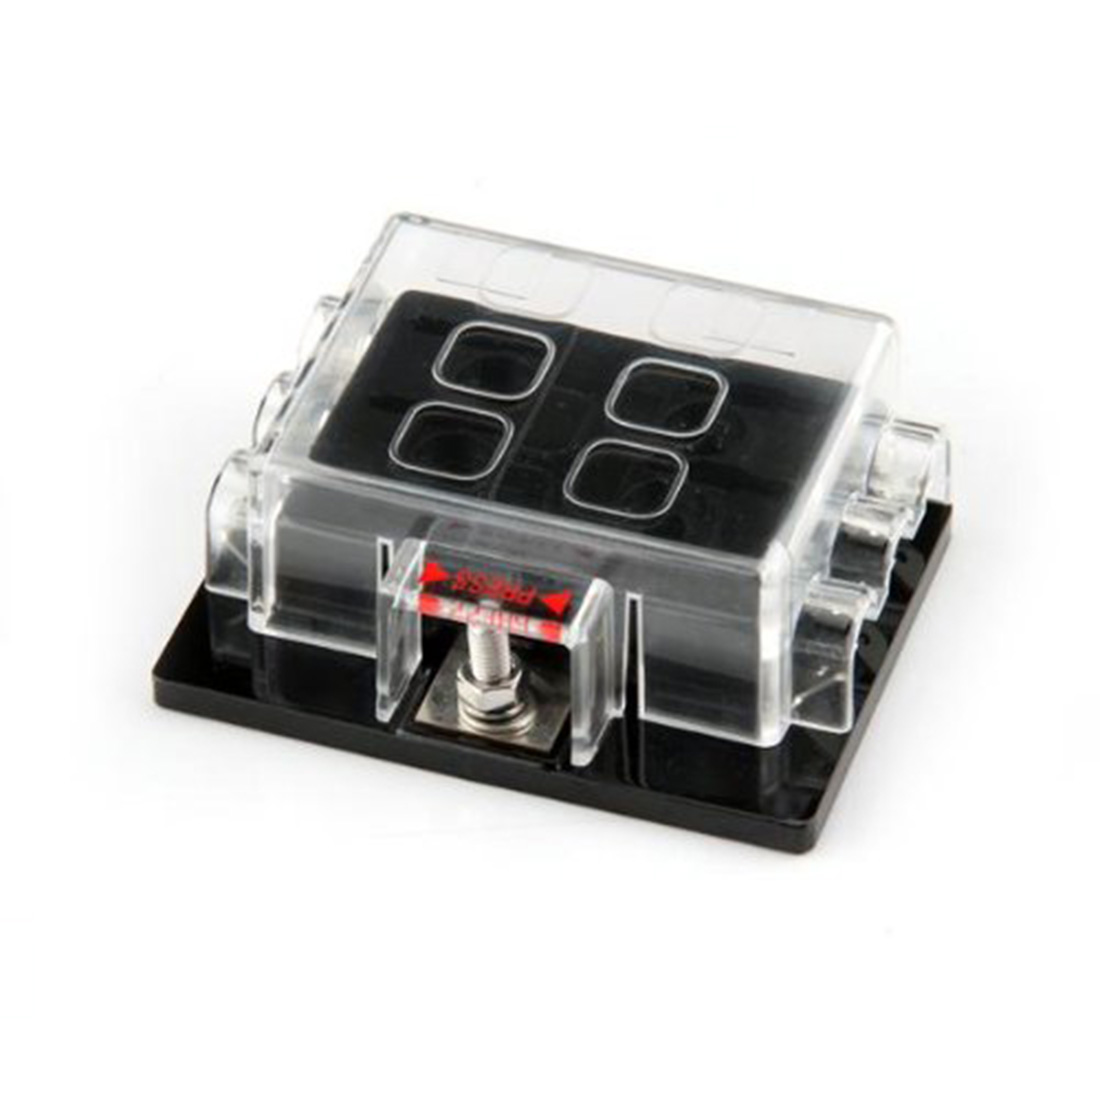 small resolution of cover material clear pc material widely used in airplane subway bus ship tanker modified car eco car etc package includes 1 x fuse box